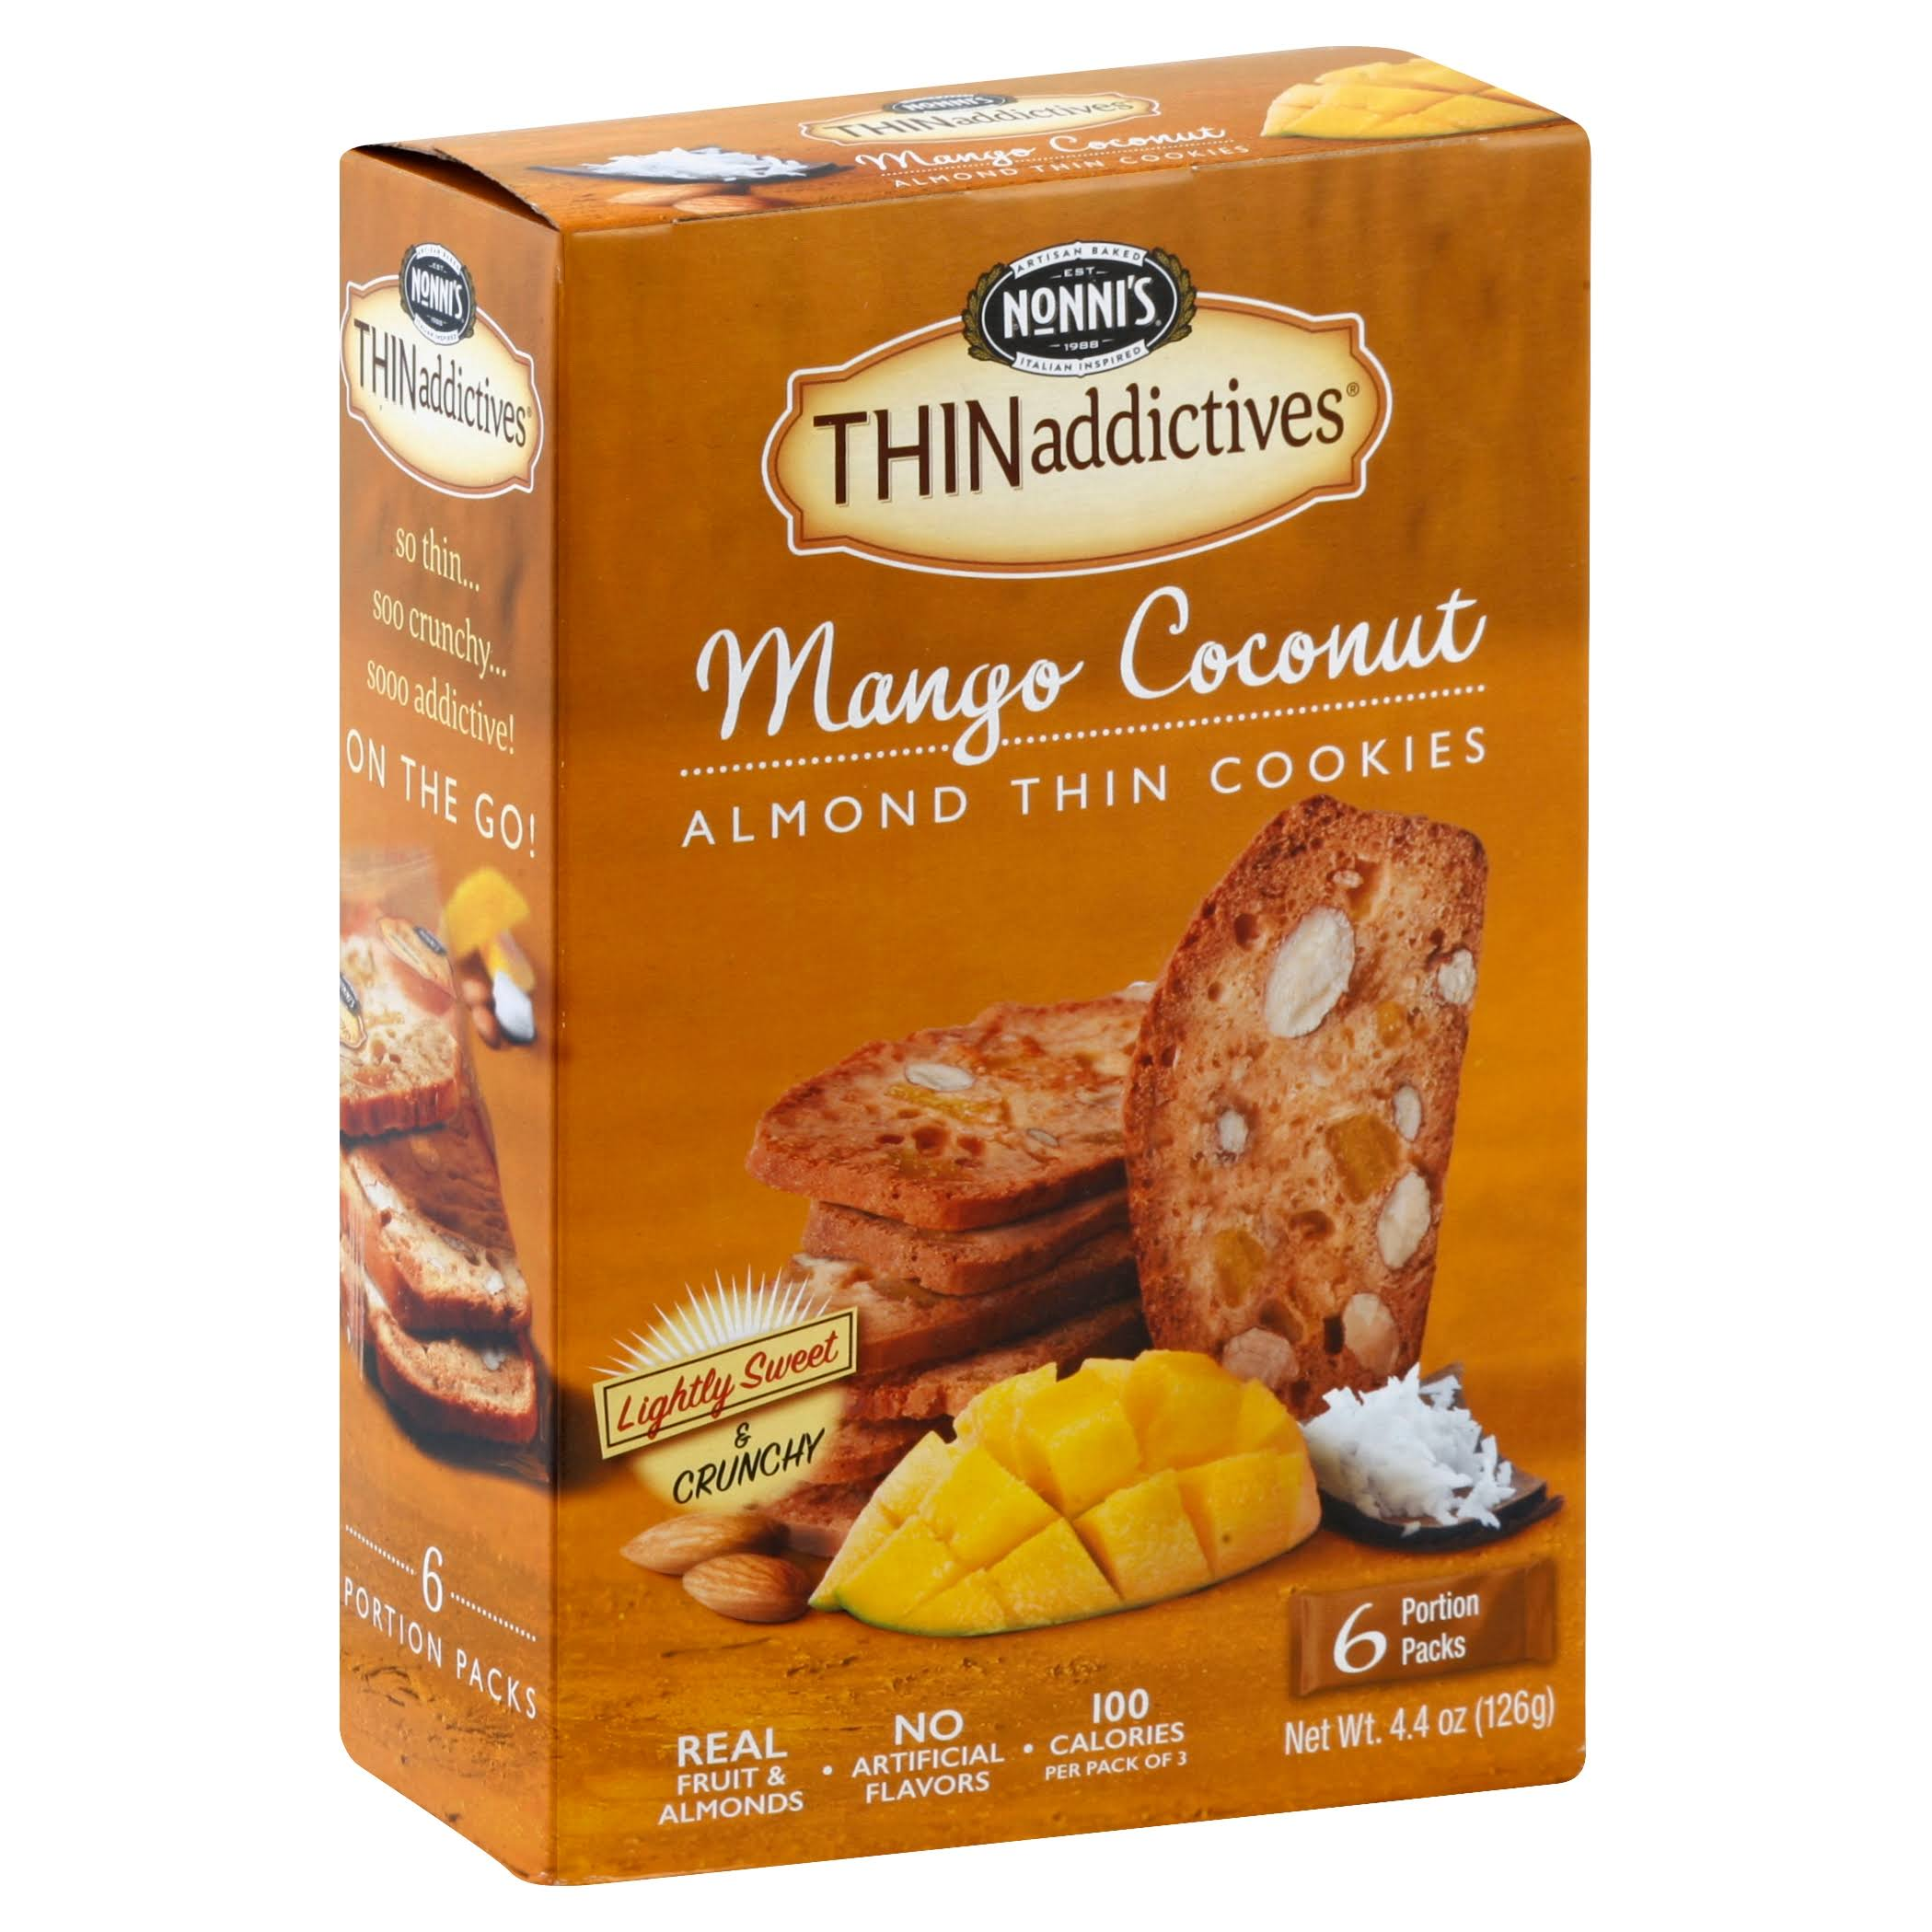 Nonni's Thinaddictives Thin Cookies - Mango Coconut Almond, 4.5oz